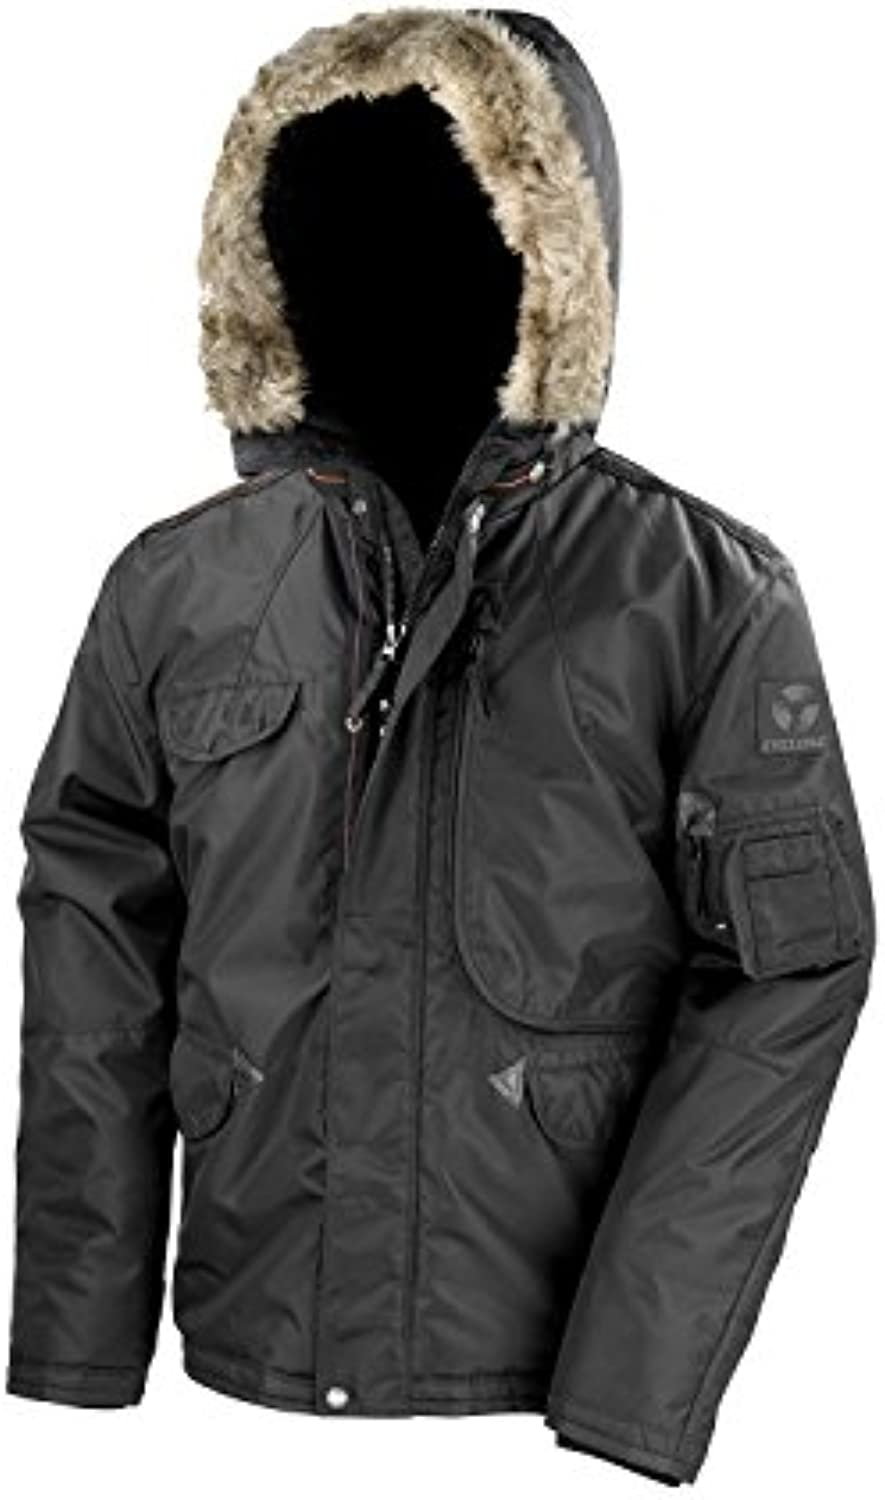 Result ulimate Cyclone Parka Cyclone ulimate acdc0e - inetlimited.com 7f4118ee919